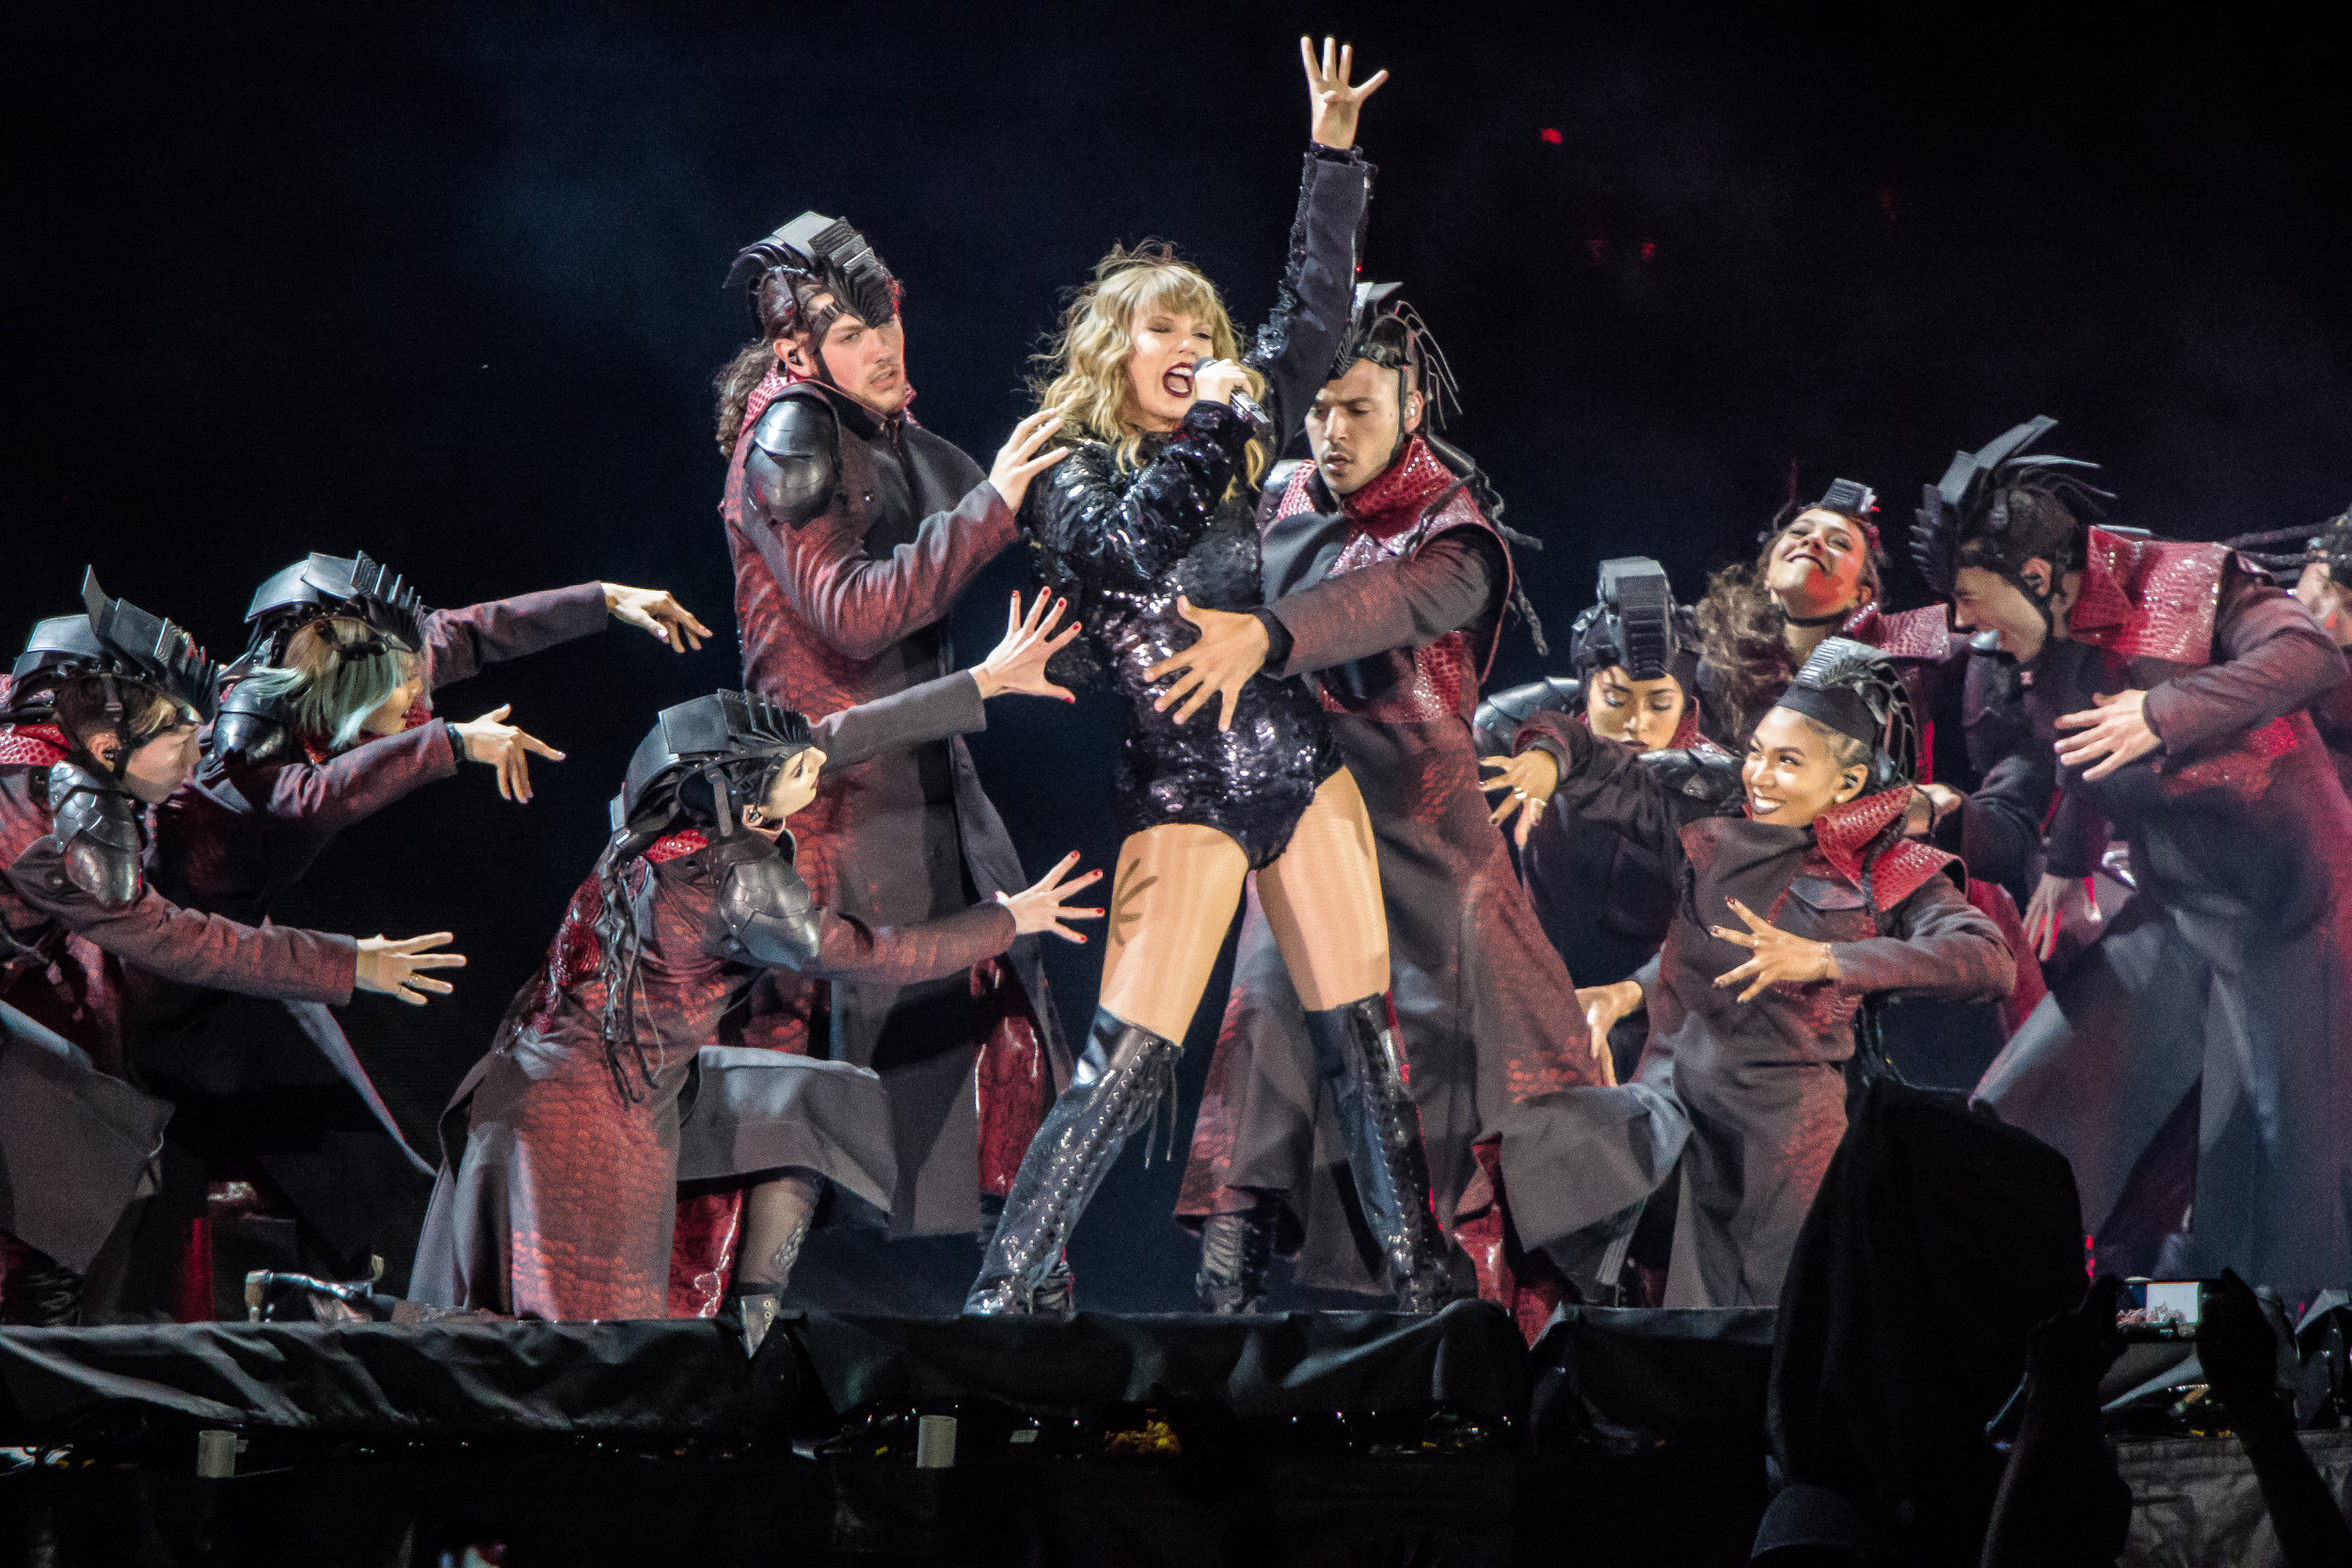 Taylor Swift Dazzles During Her Reputation Tour In Denver